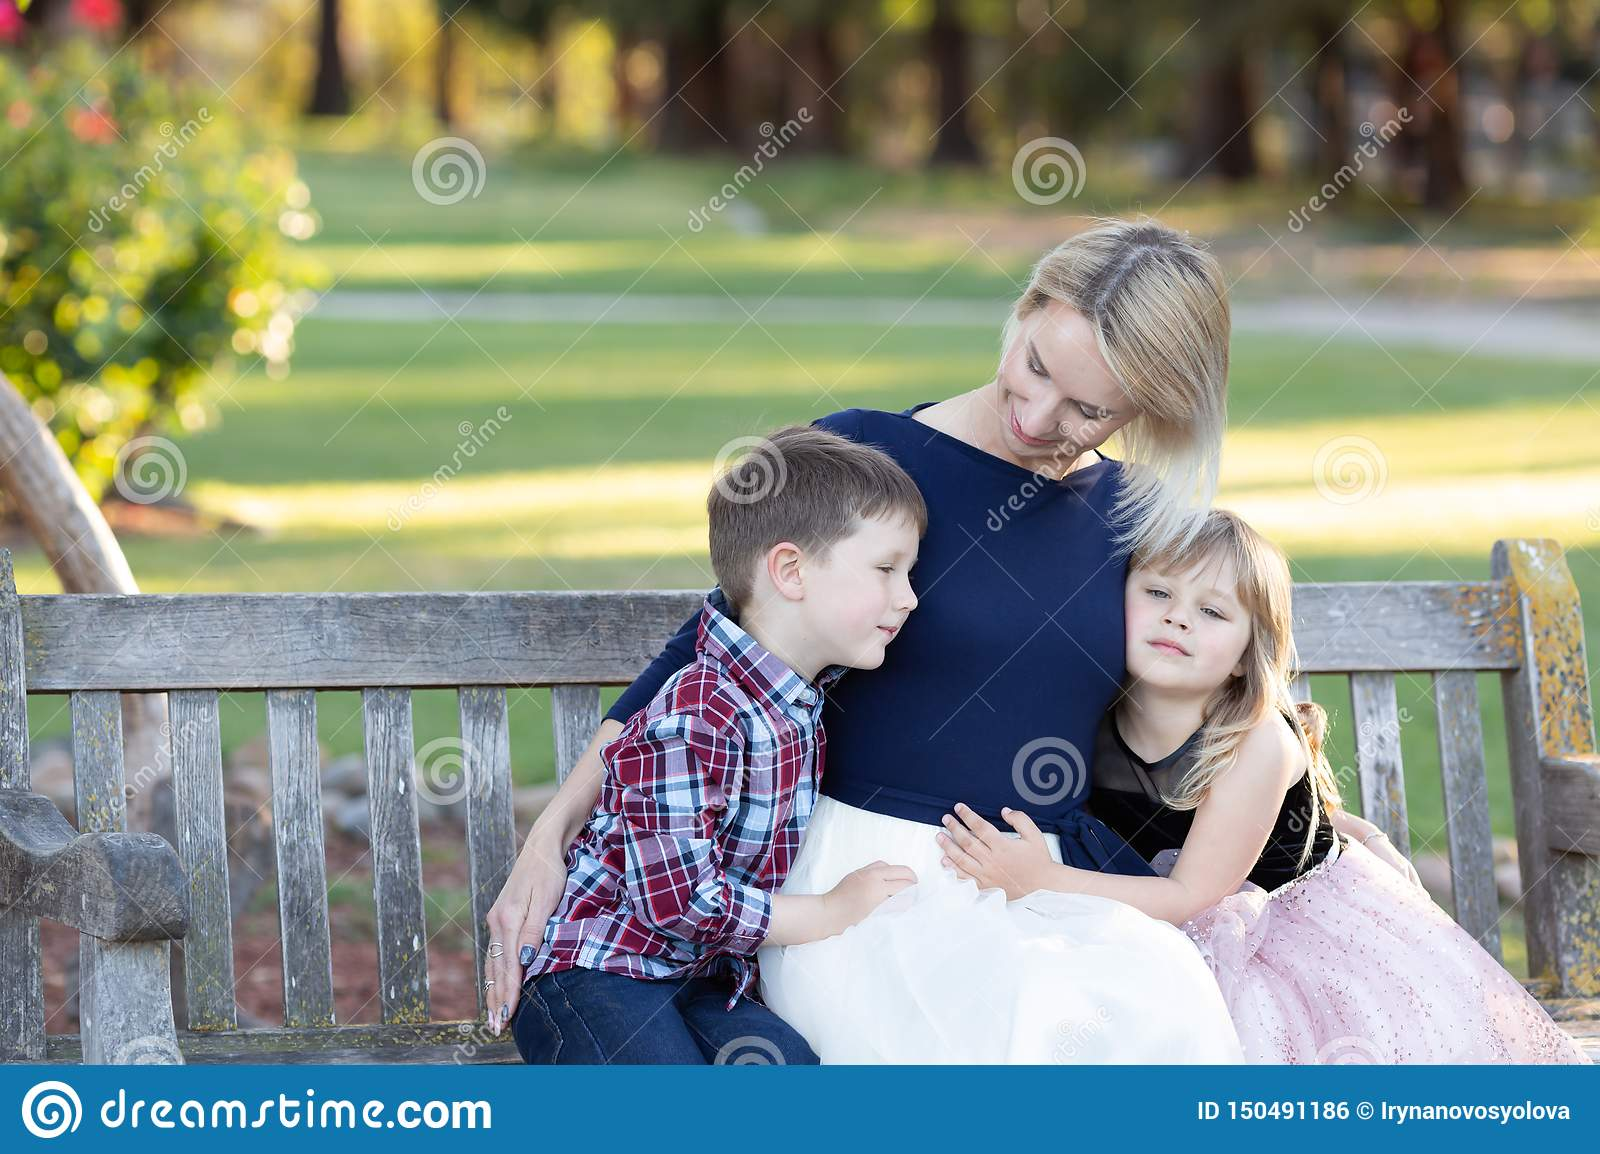 Happy mother with two children sitting on a wooden bench in a garden